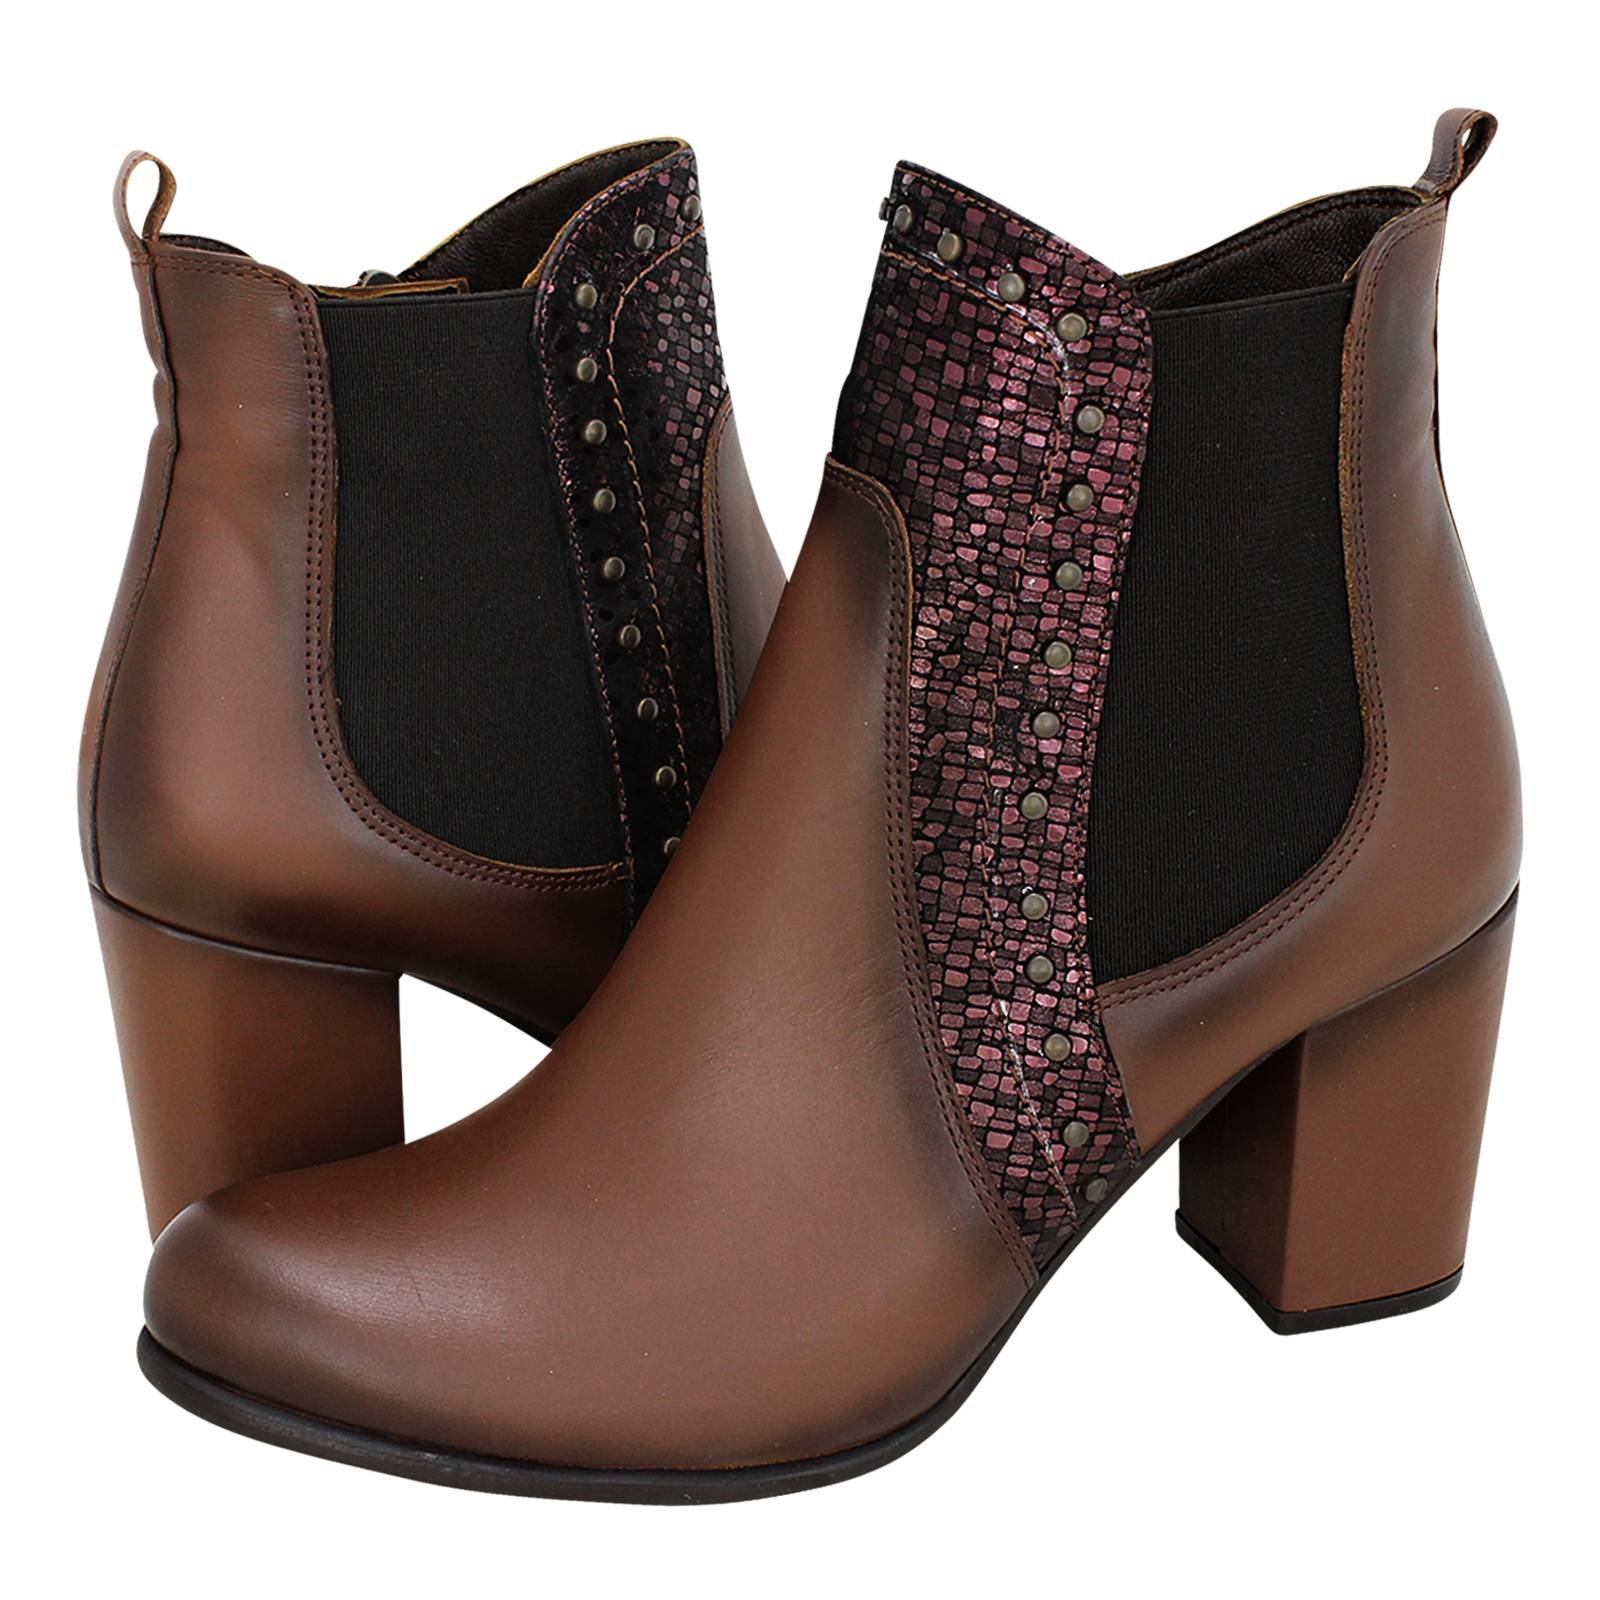 Tunali - Esthissis Women s low boots made of leather 36b8c36047f